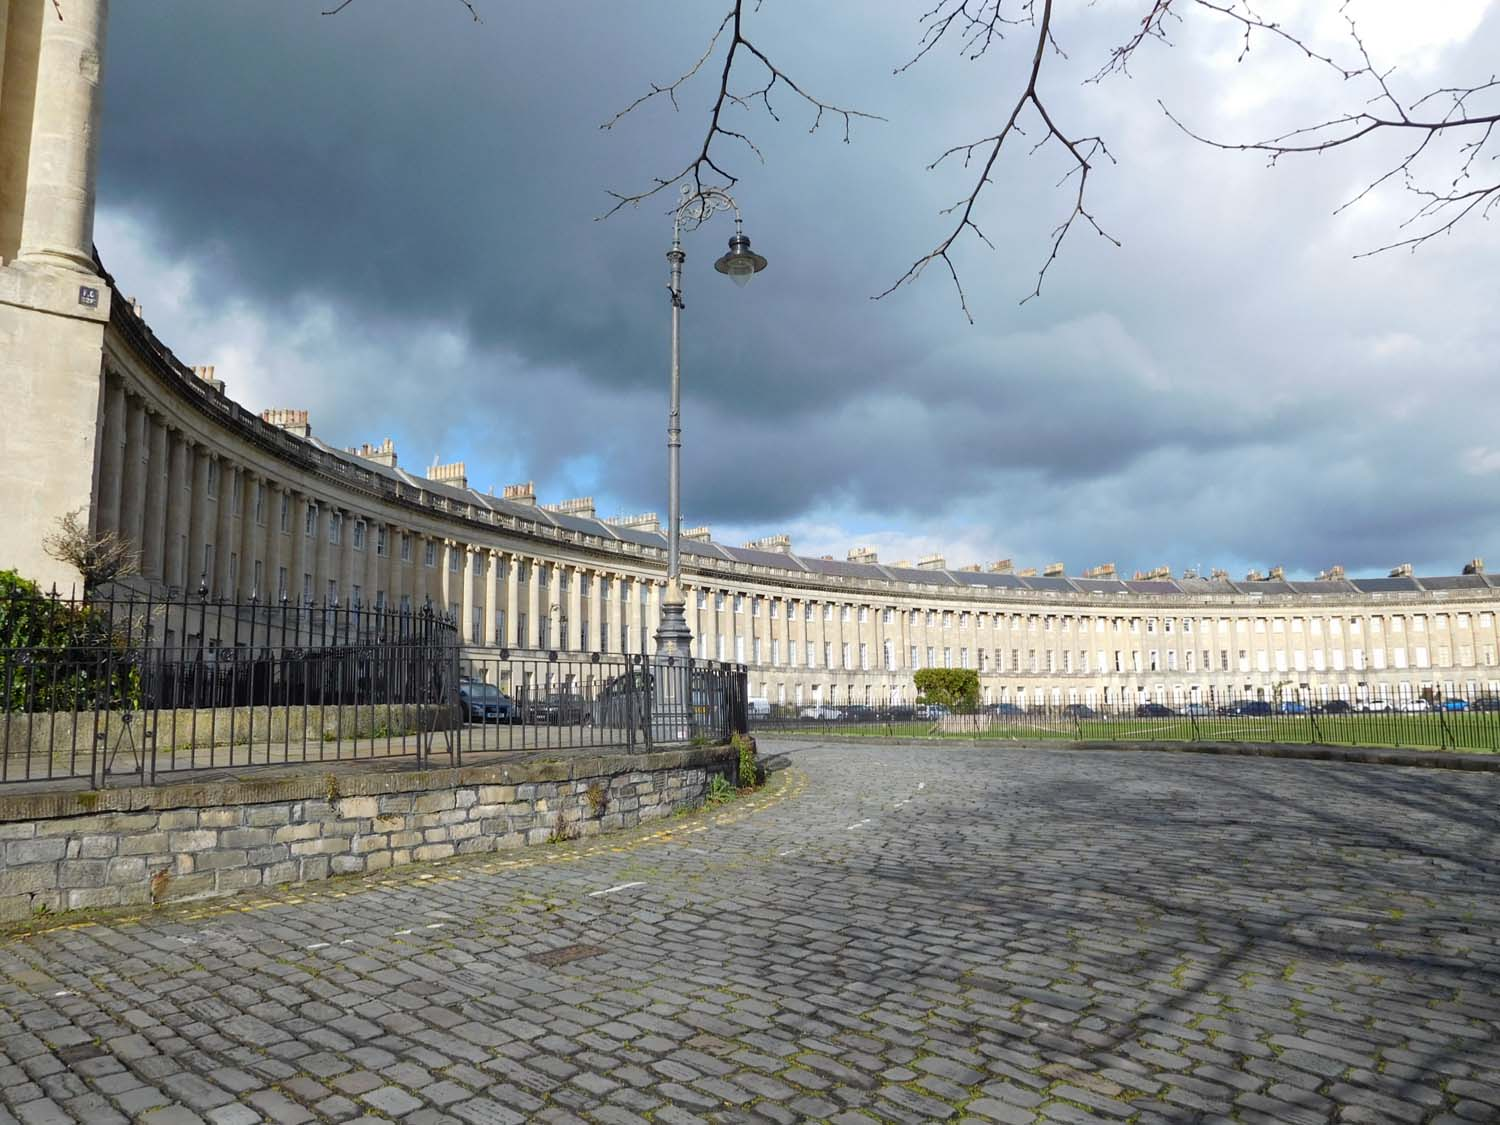 Royal-Crescent8.jpg